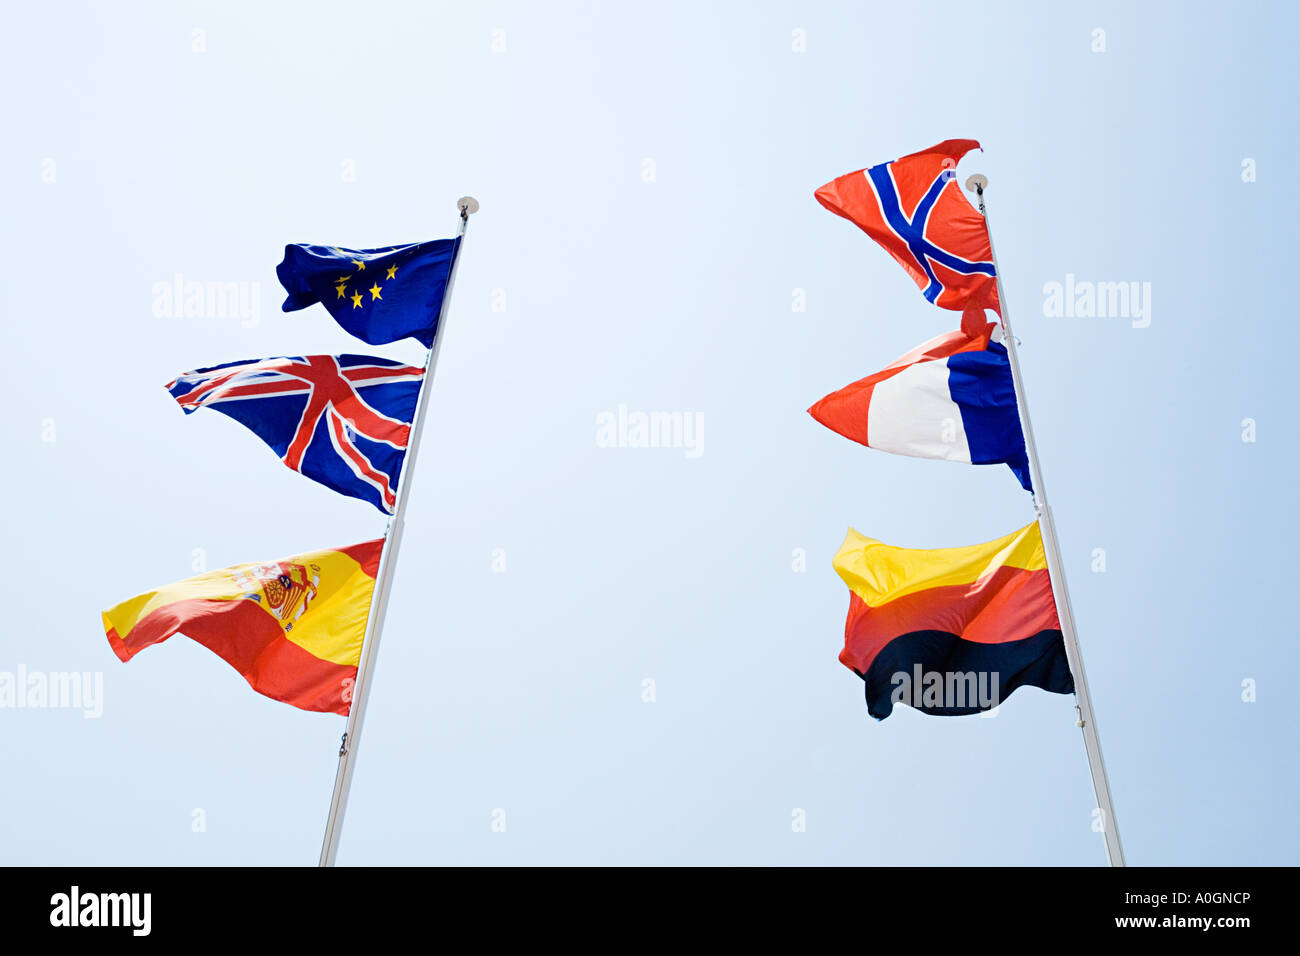 Flags of europe - Stock Image